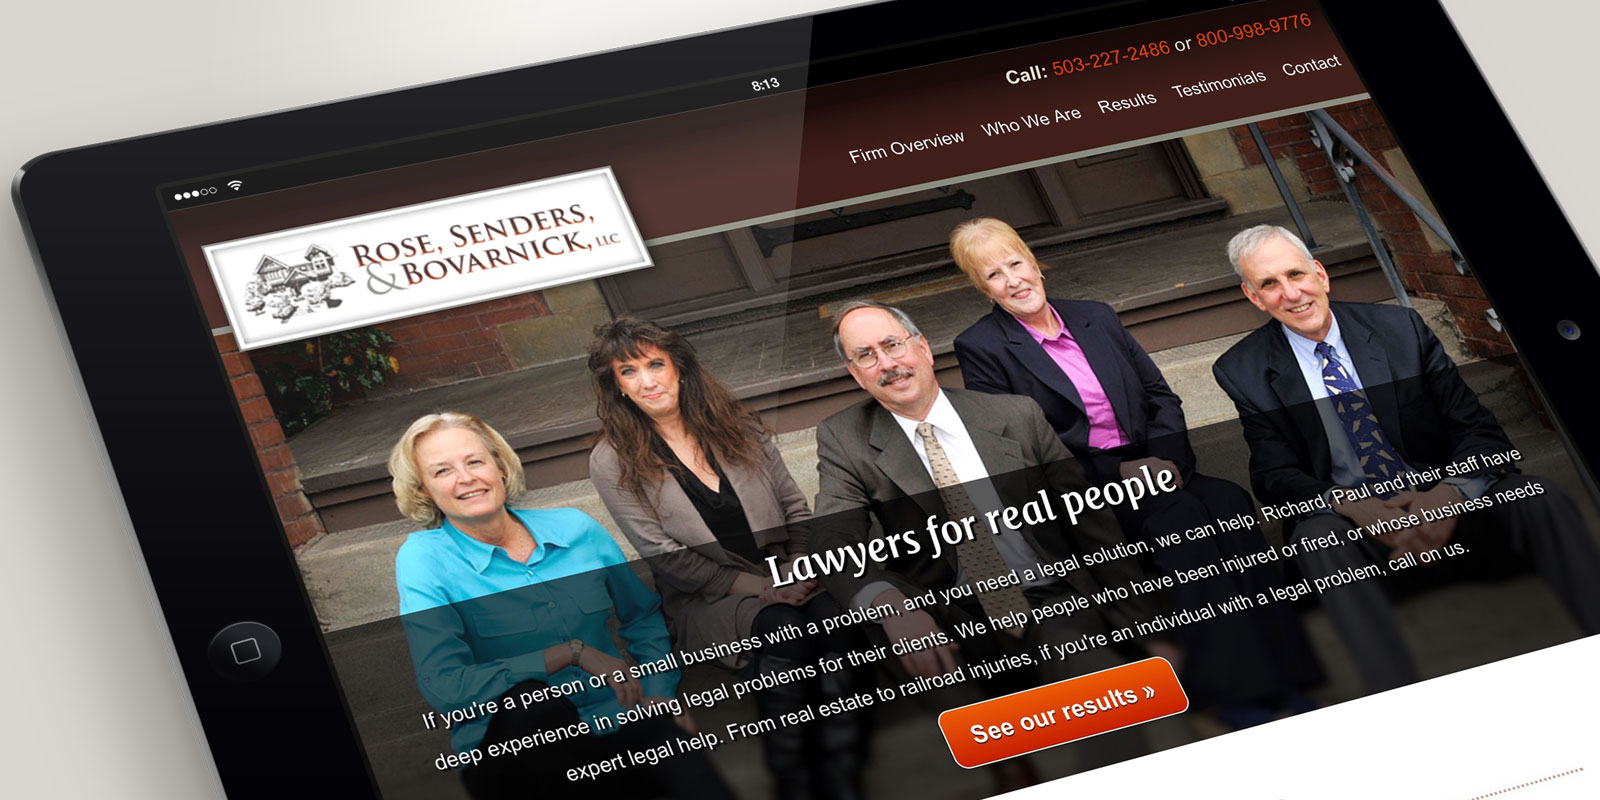 Rose, Senders, and Bovarnick Law website